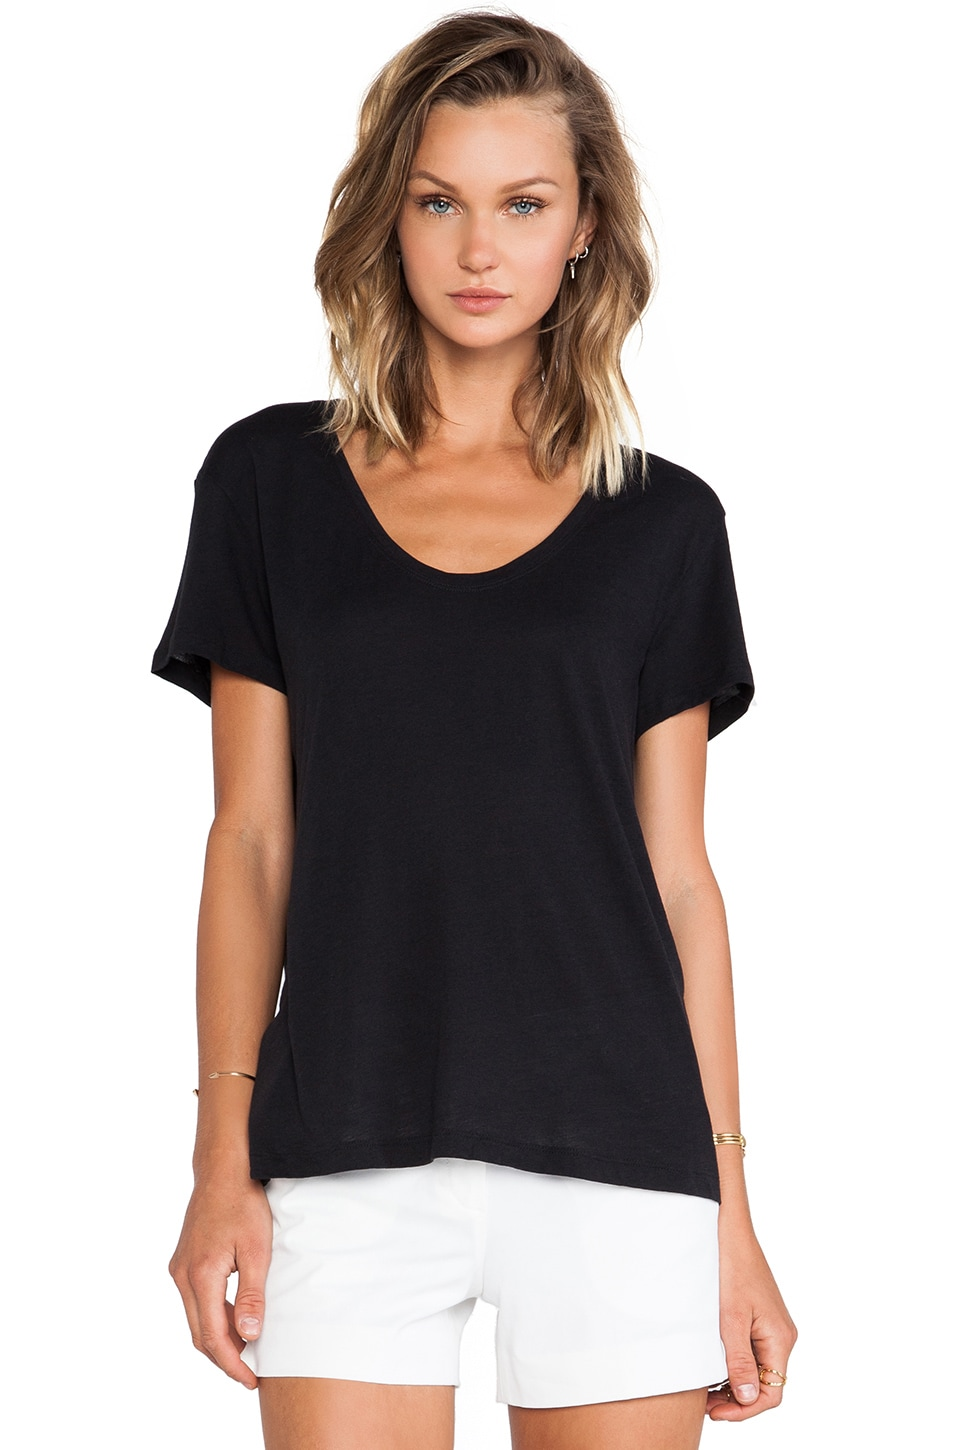 Theory Bianata Top in Black